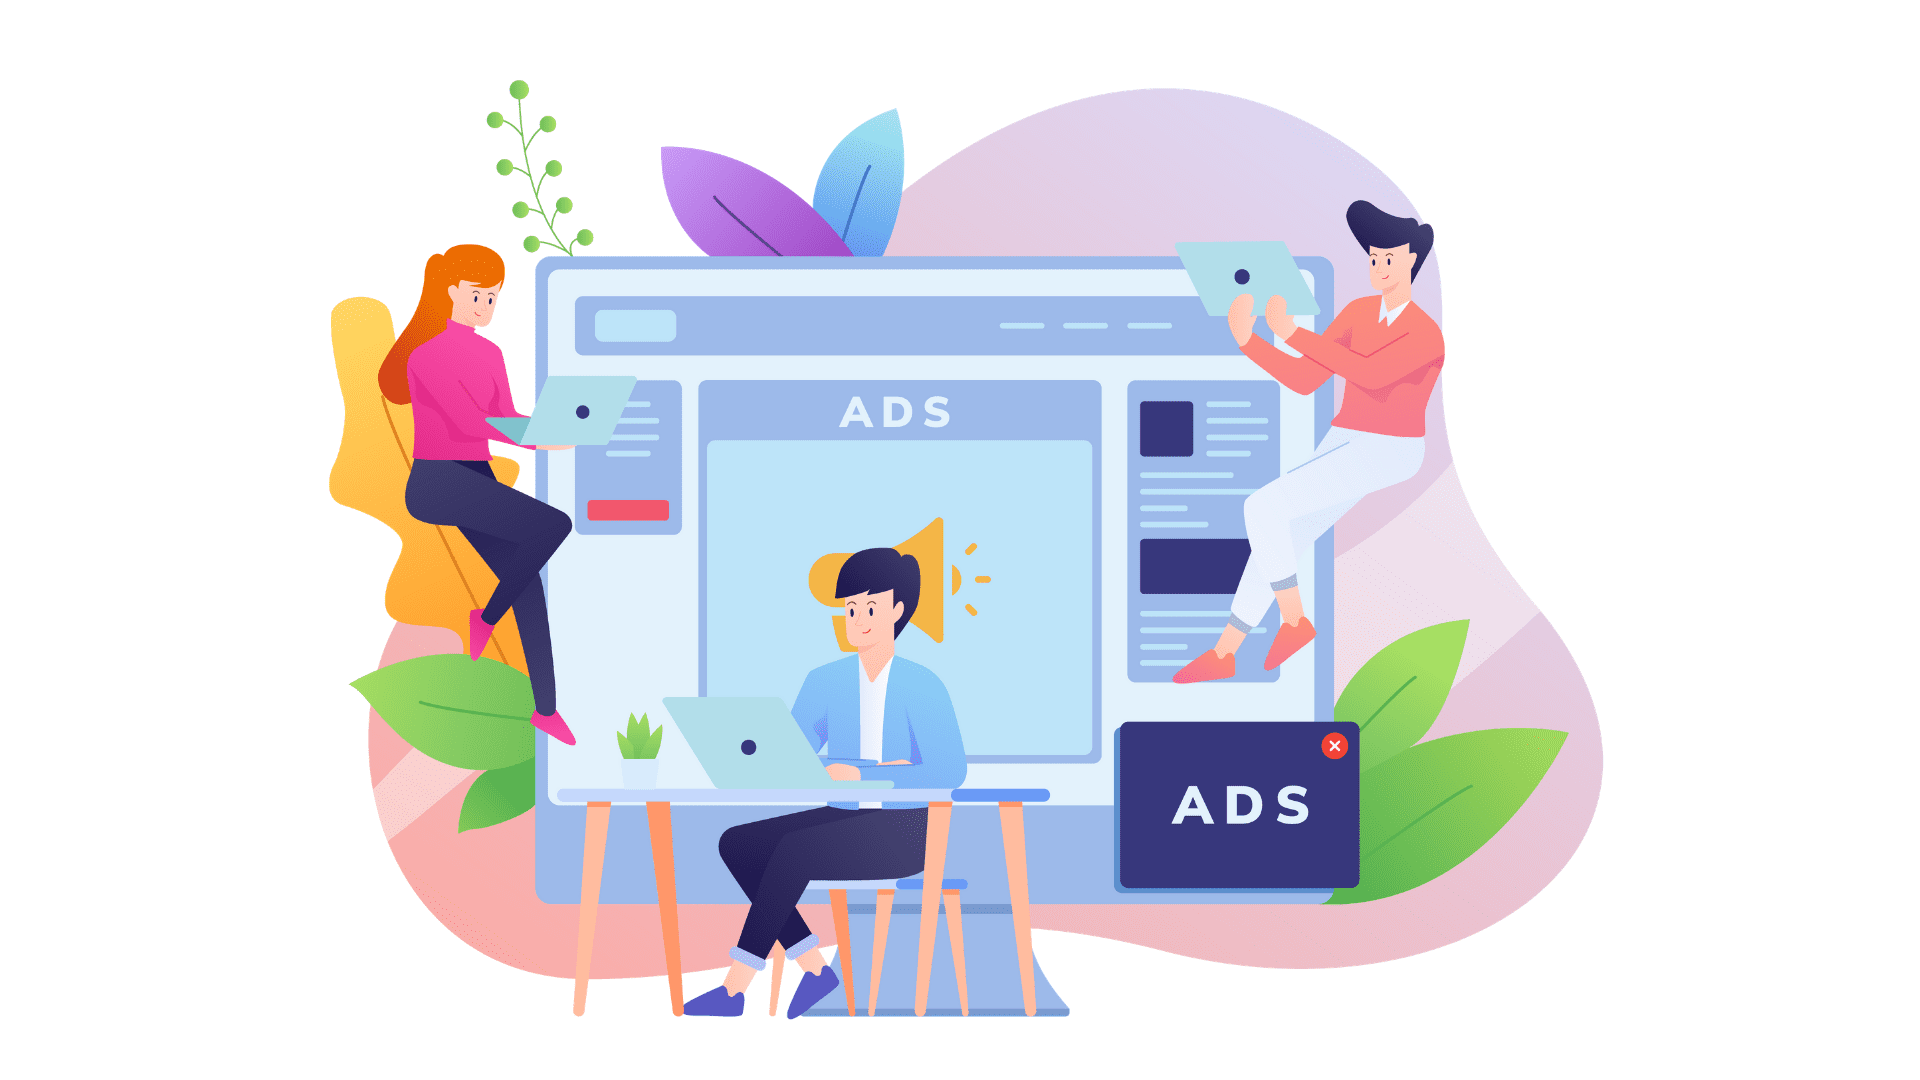 mobile ad networks FAQs